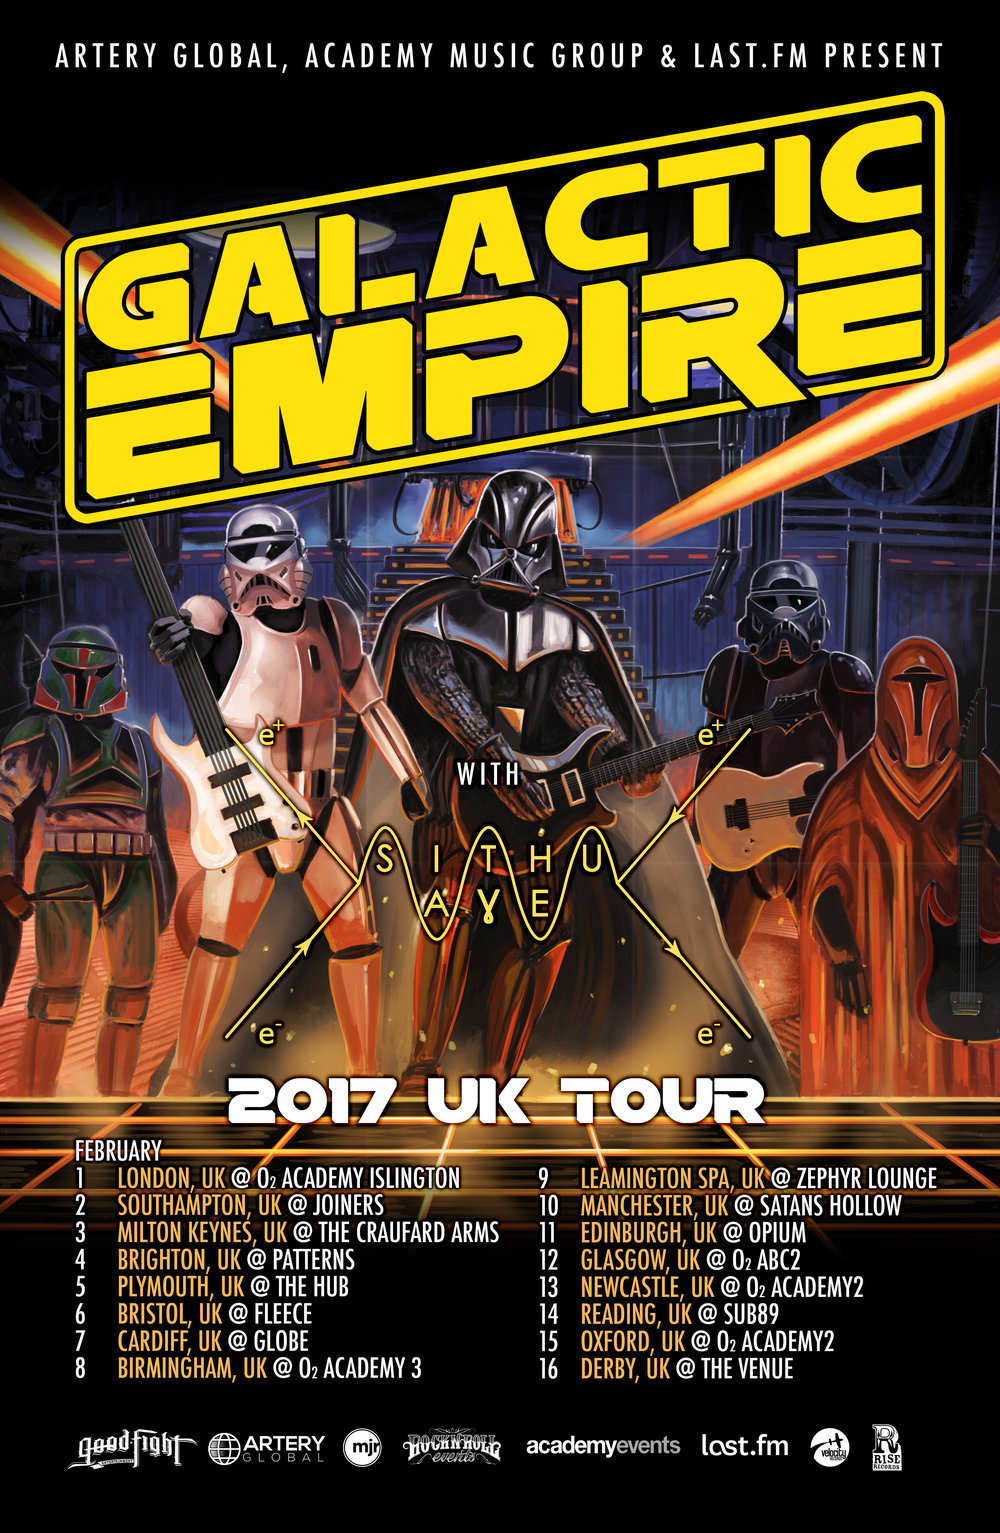 Galactic Empire UK Tour Poster.jpg